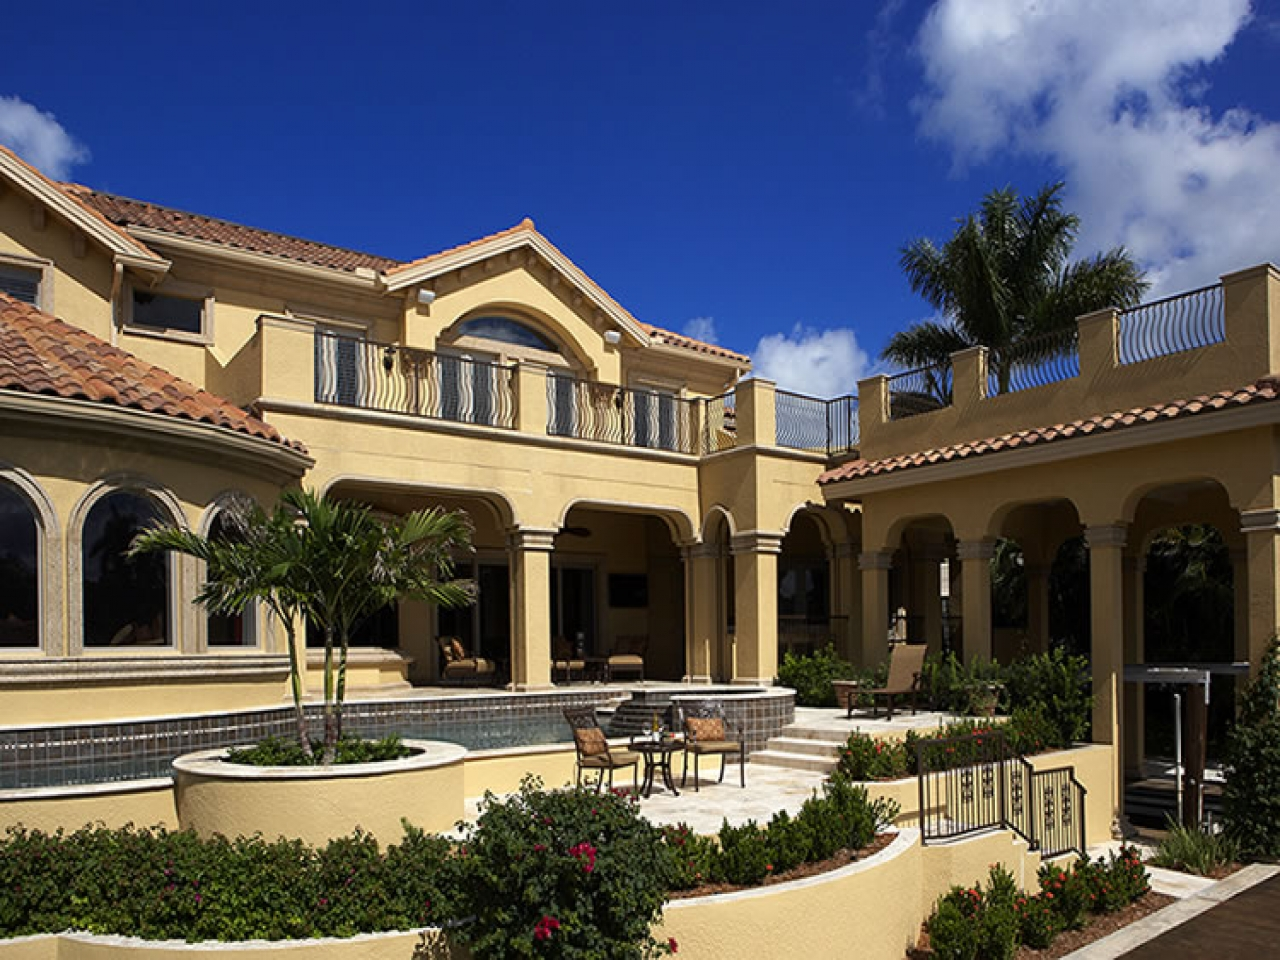 Award winning mediterranean house plans mediterranean for Award winning home designs 2012